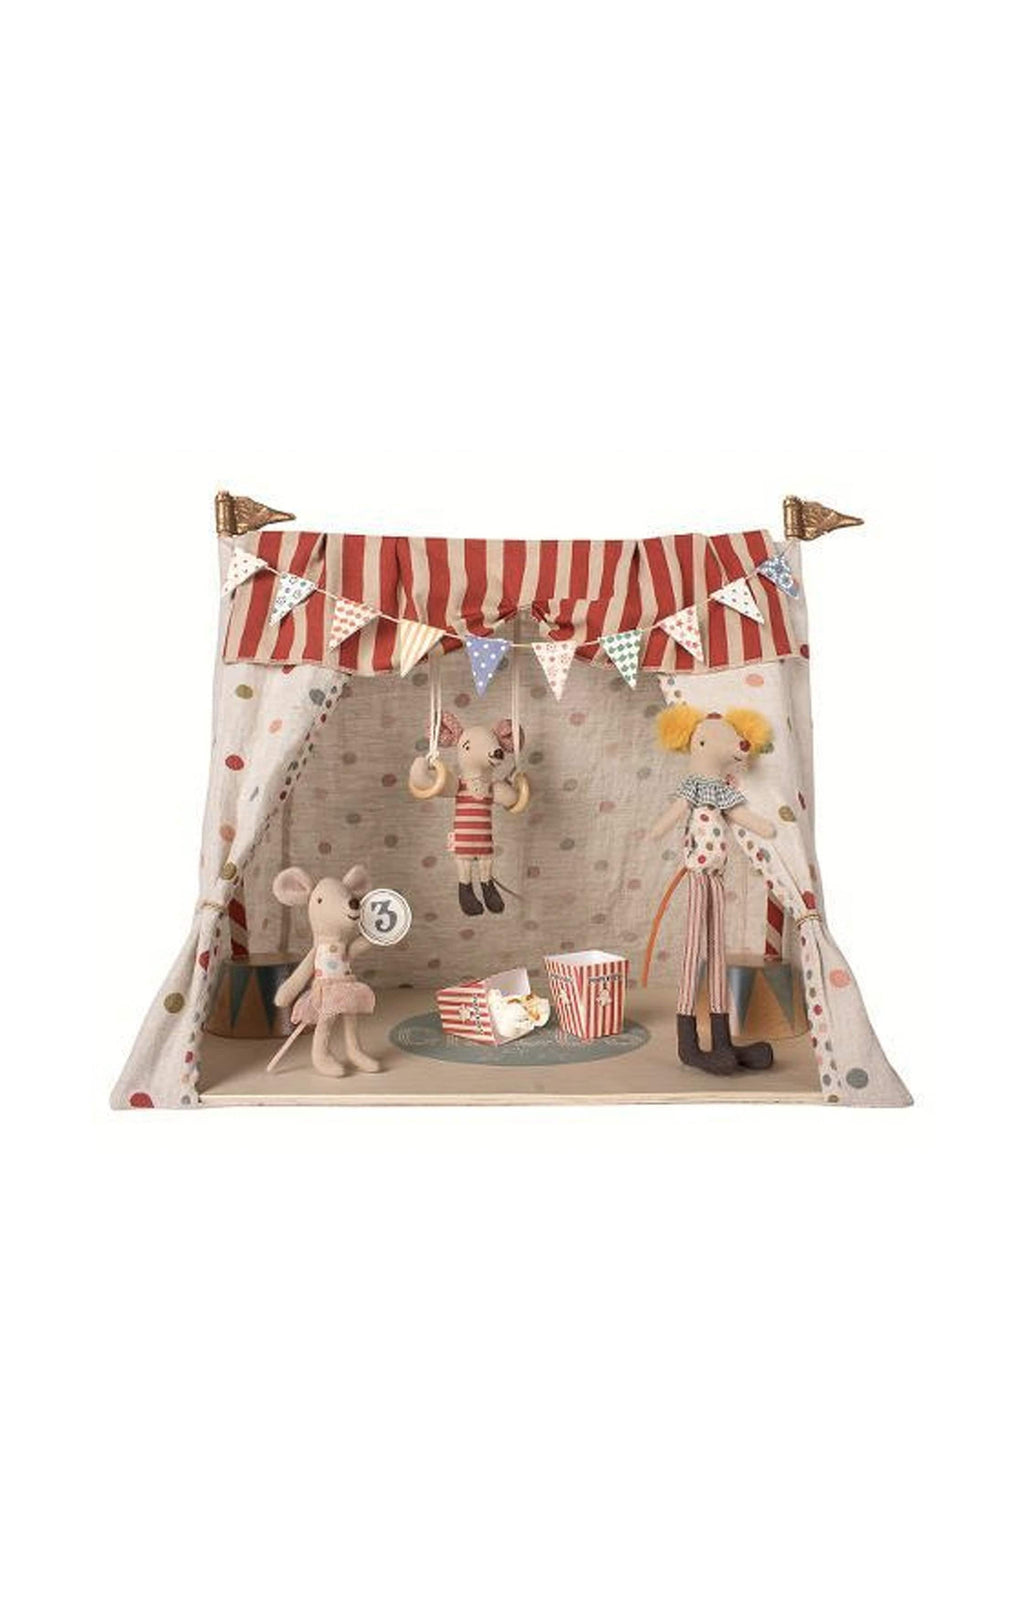 MAILEG CIRCUS TENT WITH MICE